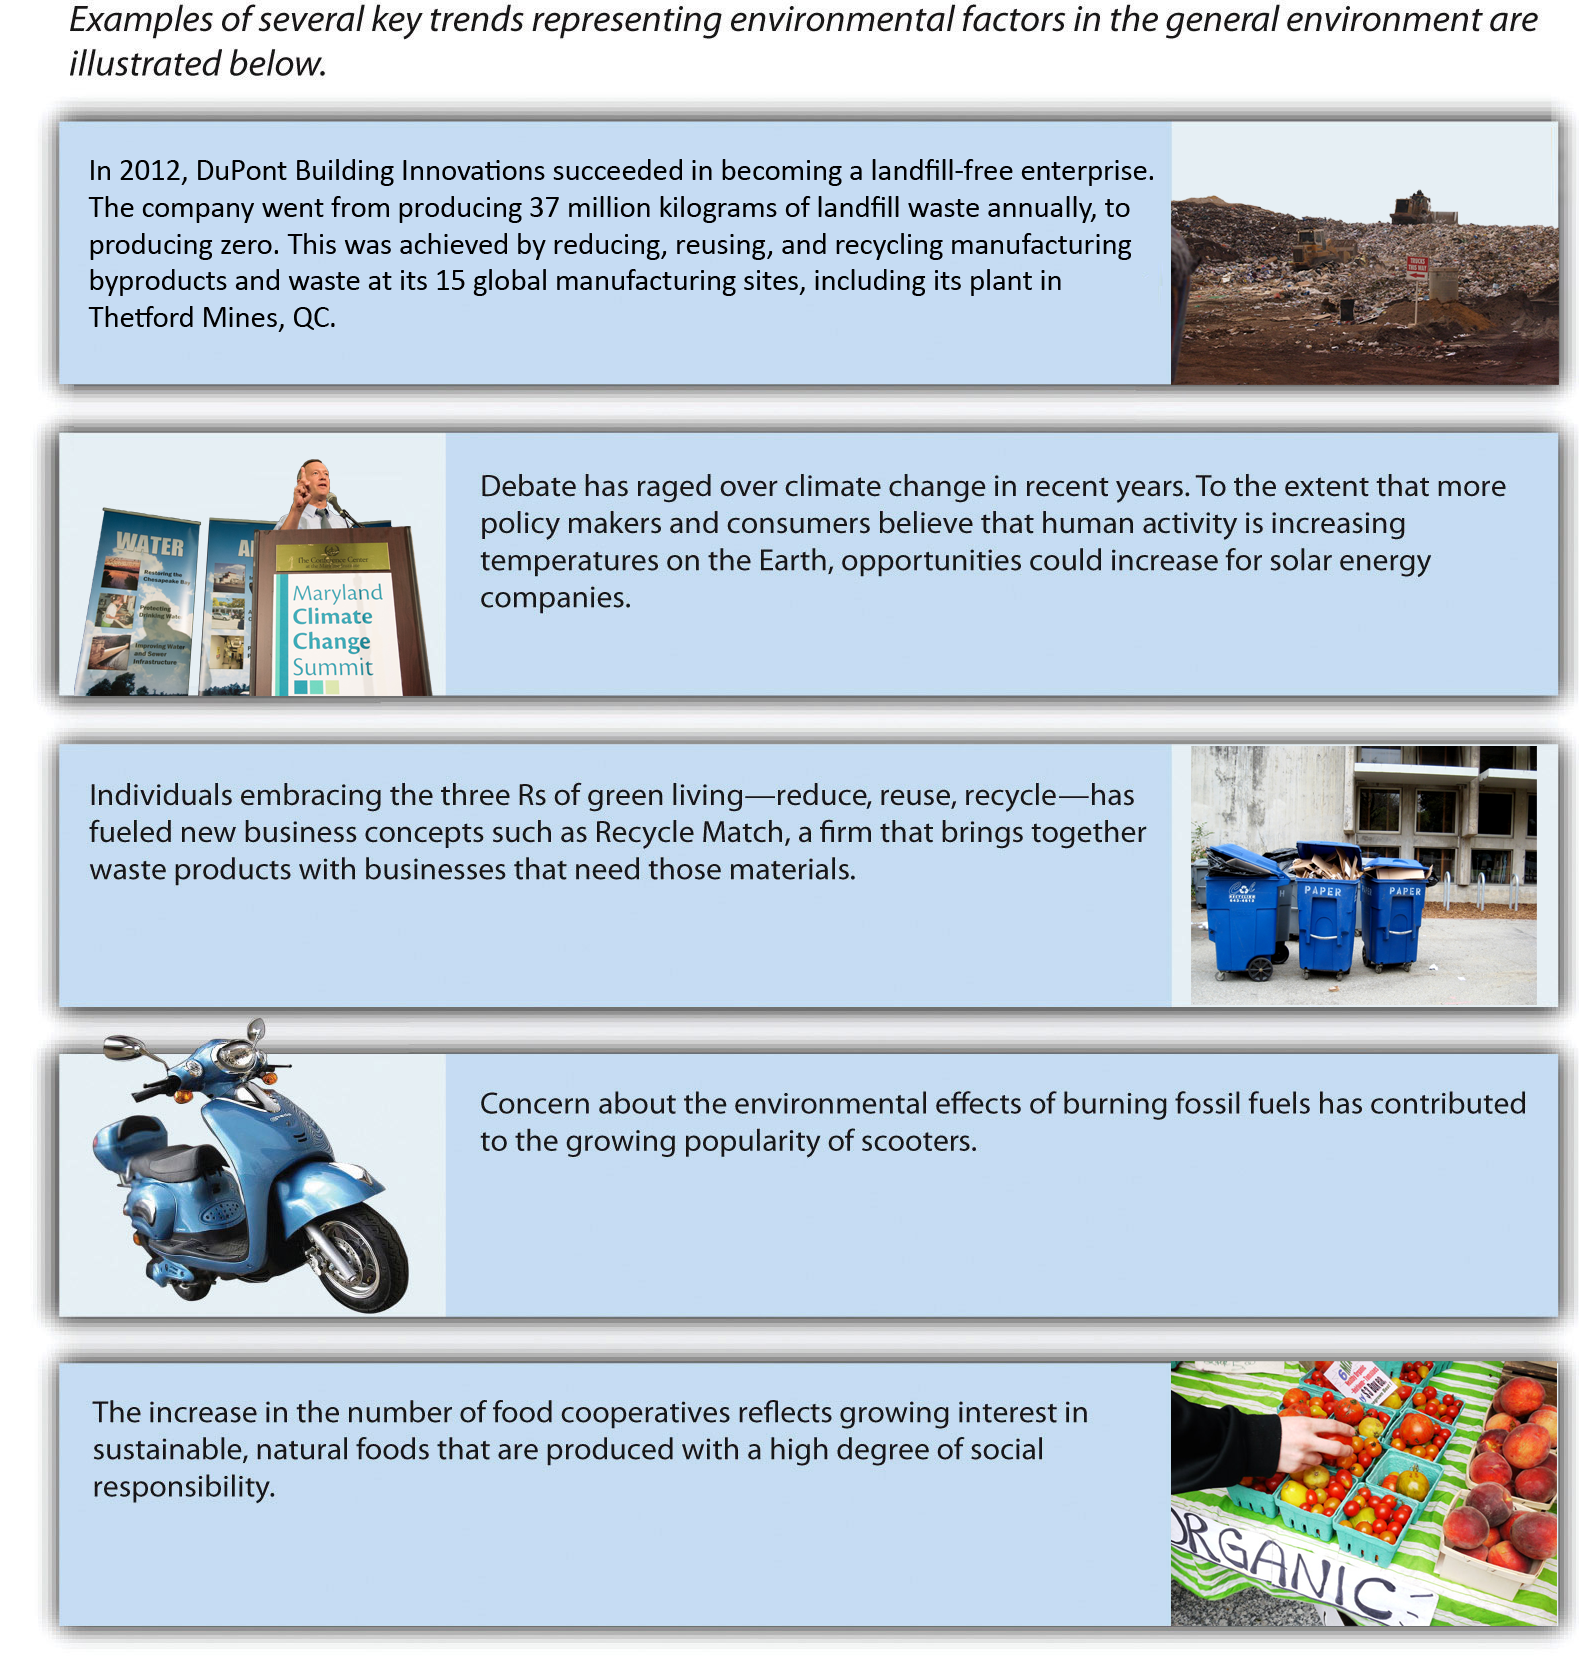 Examples of key trends representing environmental factors. Image description available